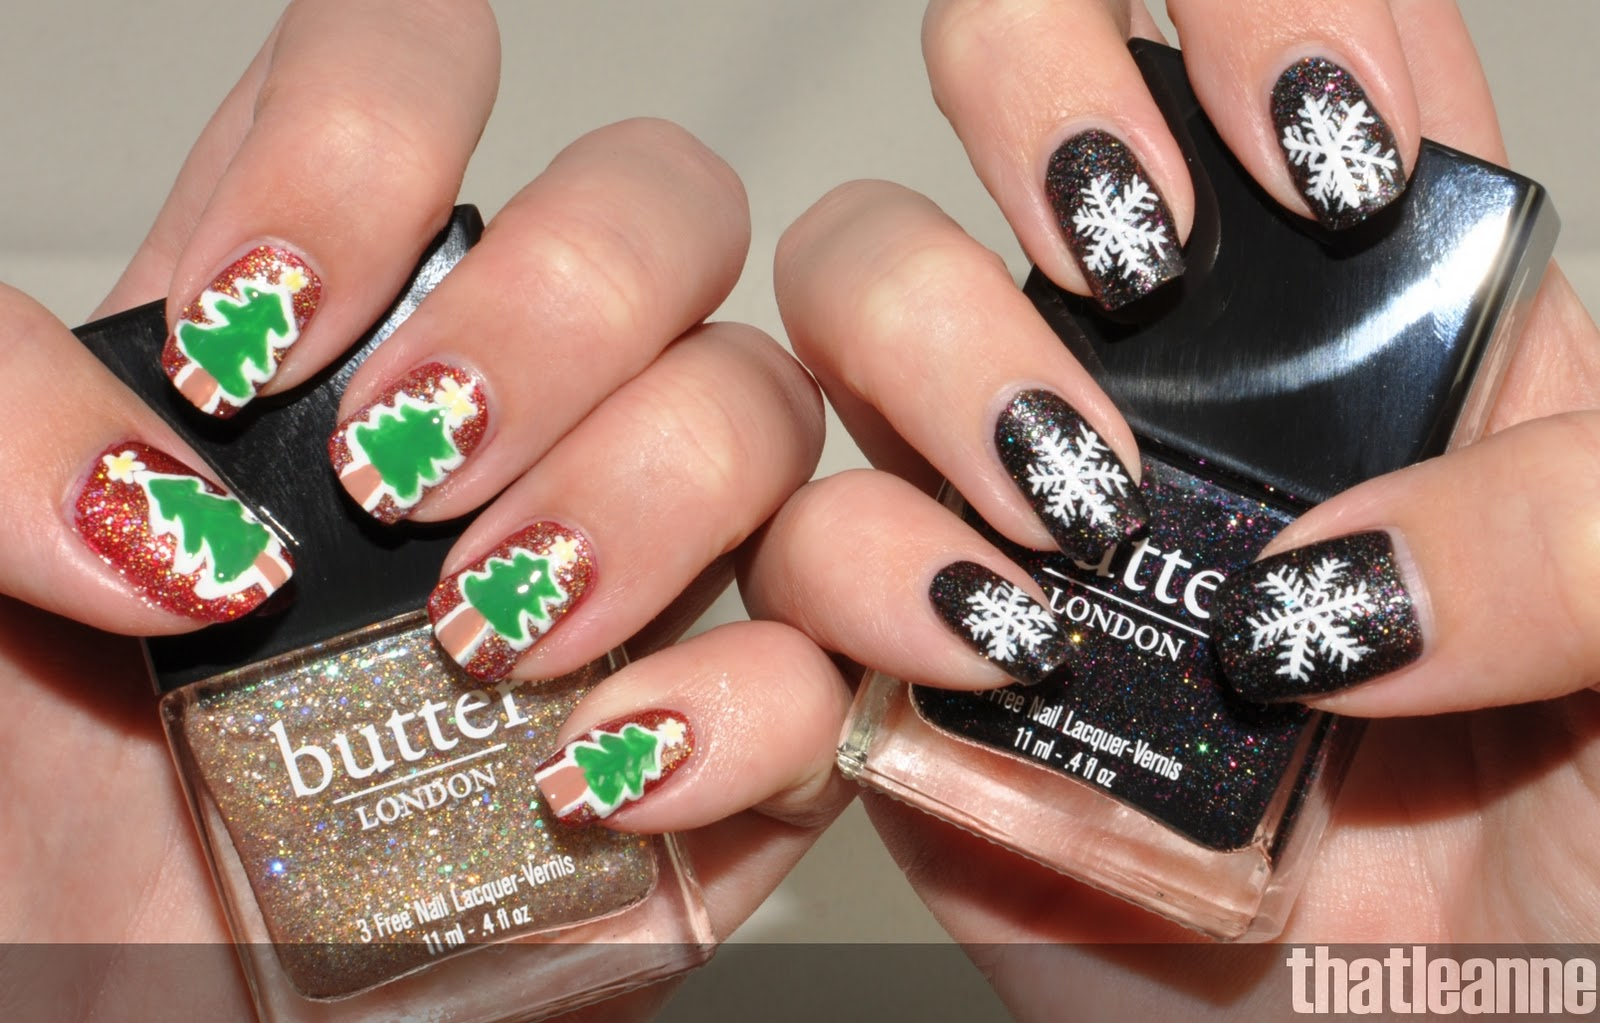 Nail art pictures nail art ideas christmas simple holiday nail art ideas feat butter london holiday 2011 prinsesfo Image collections